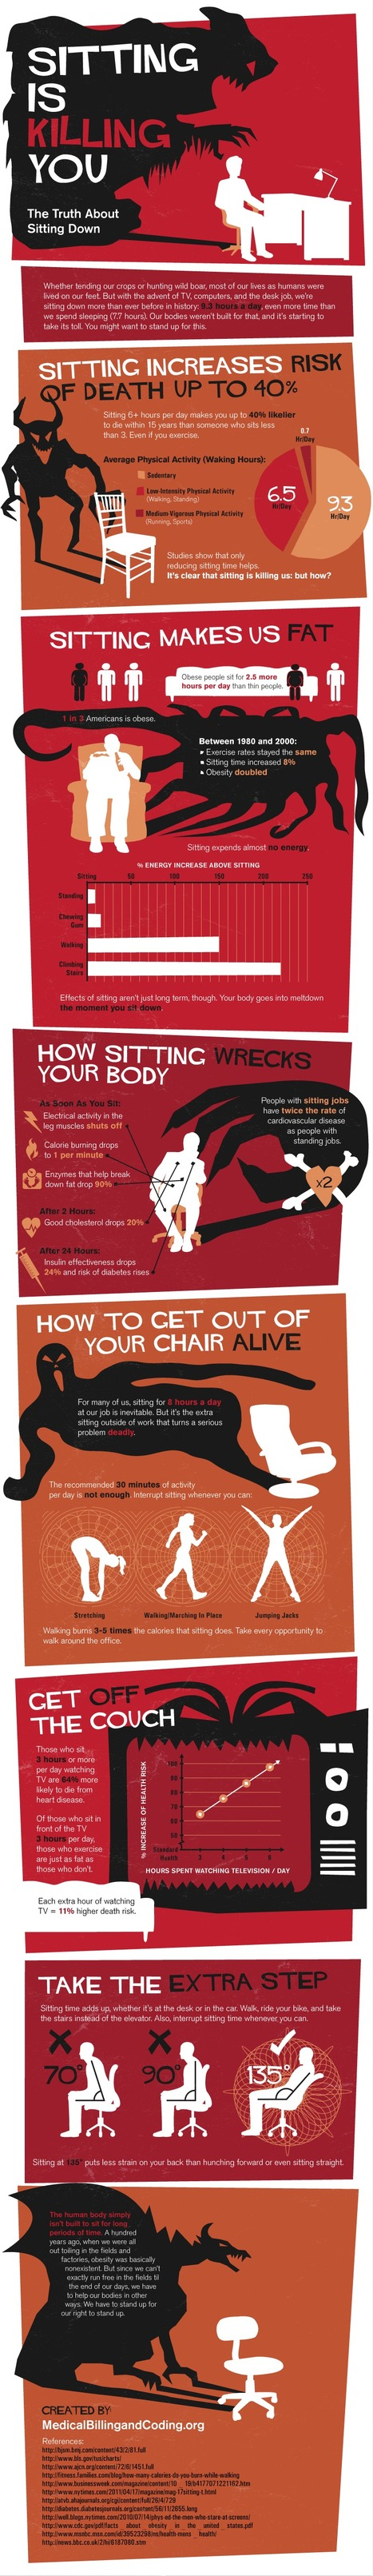 "Health Review - How Sitting all day Decreases Human Life | Infographics | ""Environmental, Climate, Global warming, Oil, Trash, recycling, Green, Energy"" 